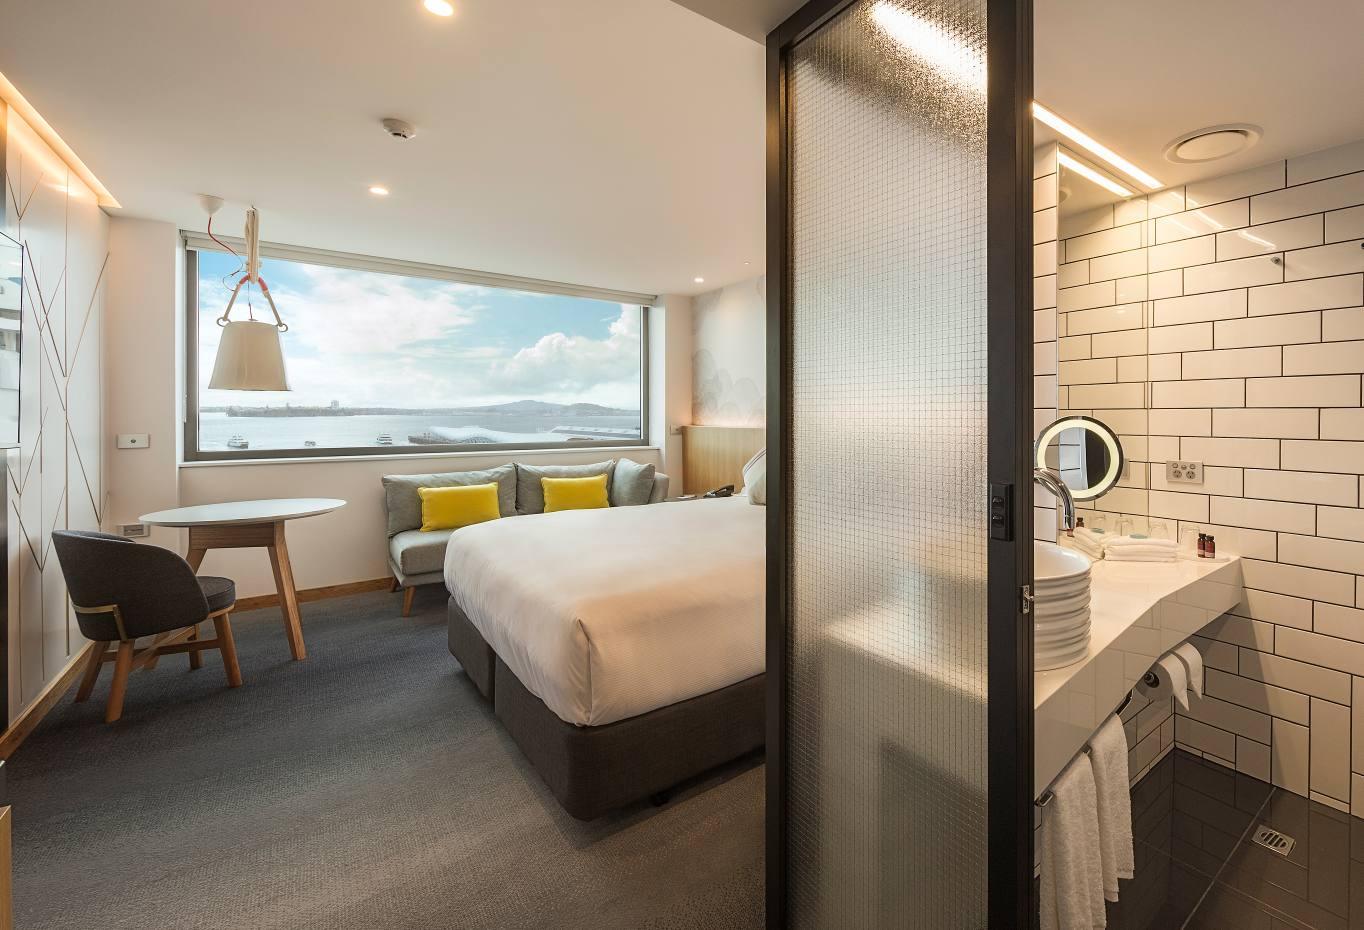 Guest rooms at M Social Auckland have wall-to-wall windows with spectacular views of Auckland Harbour